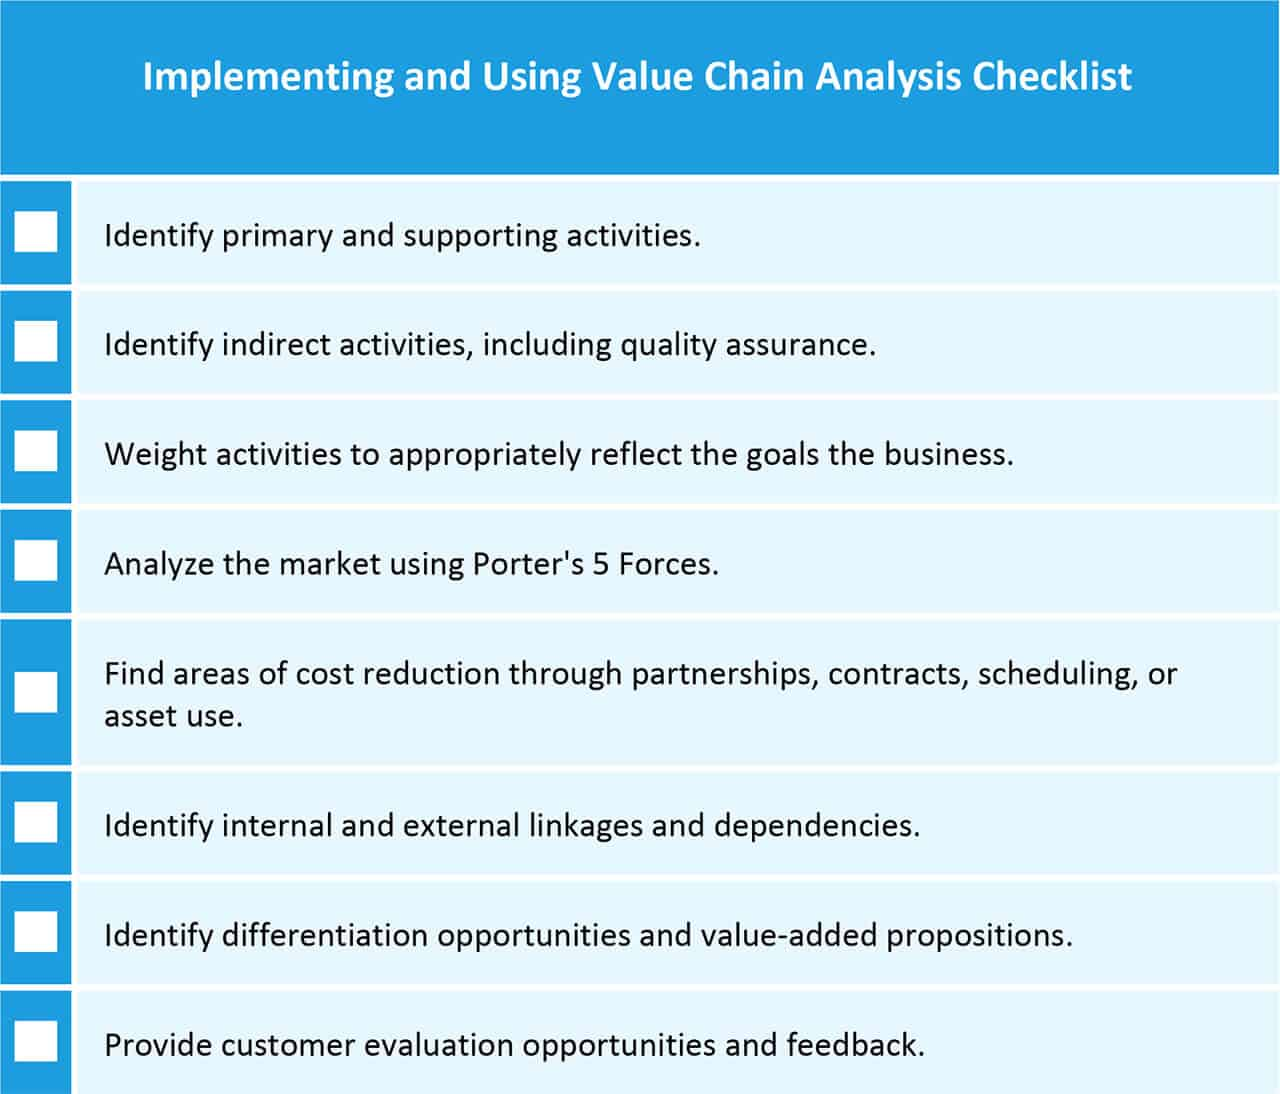 The Complete Guide to Value Chain Modeling | Smartsheet